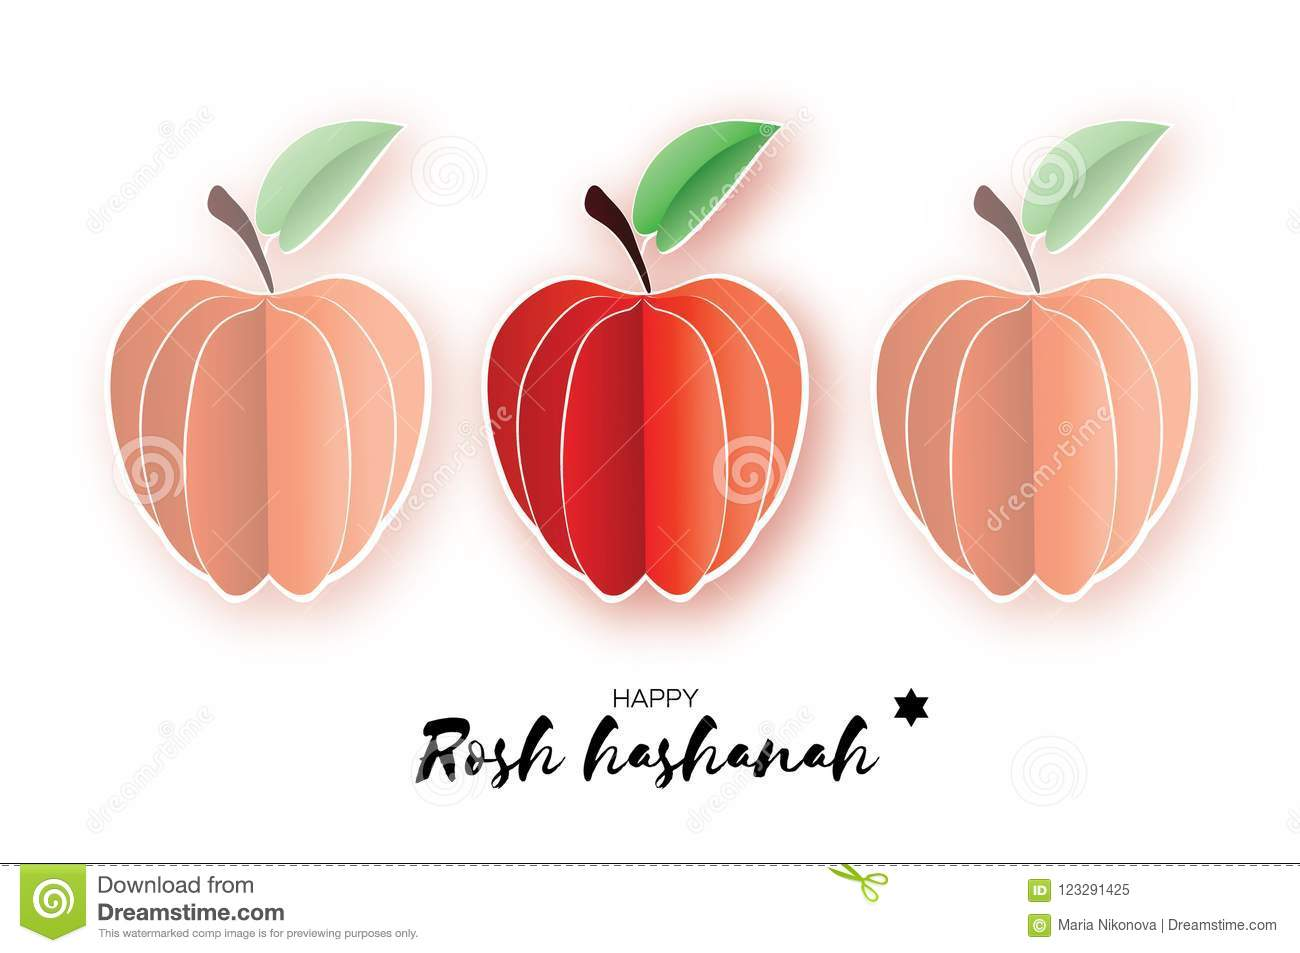 Jewish New Year Rosh Hashanah Apple Paper Cut Style Holiday